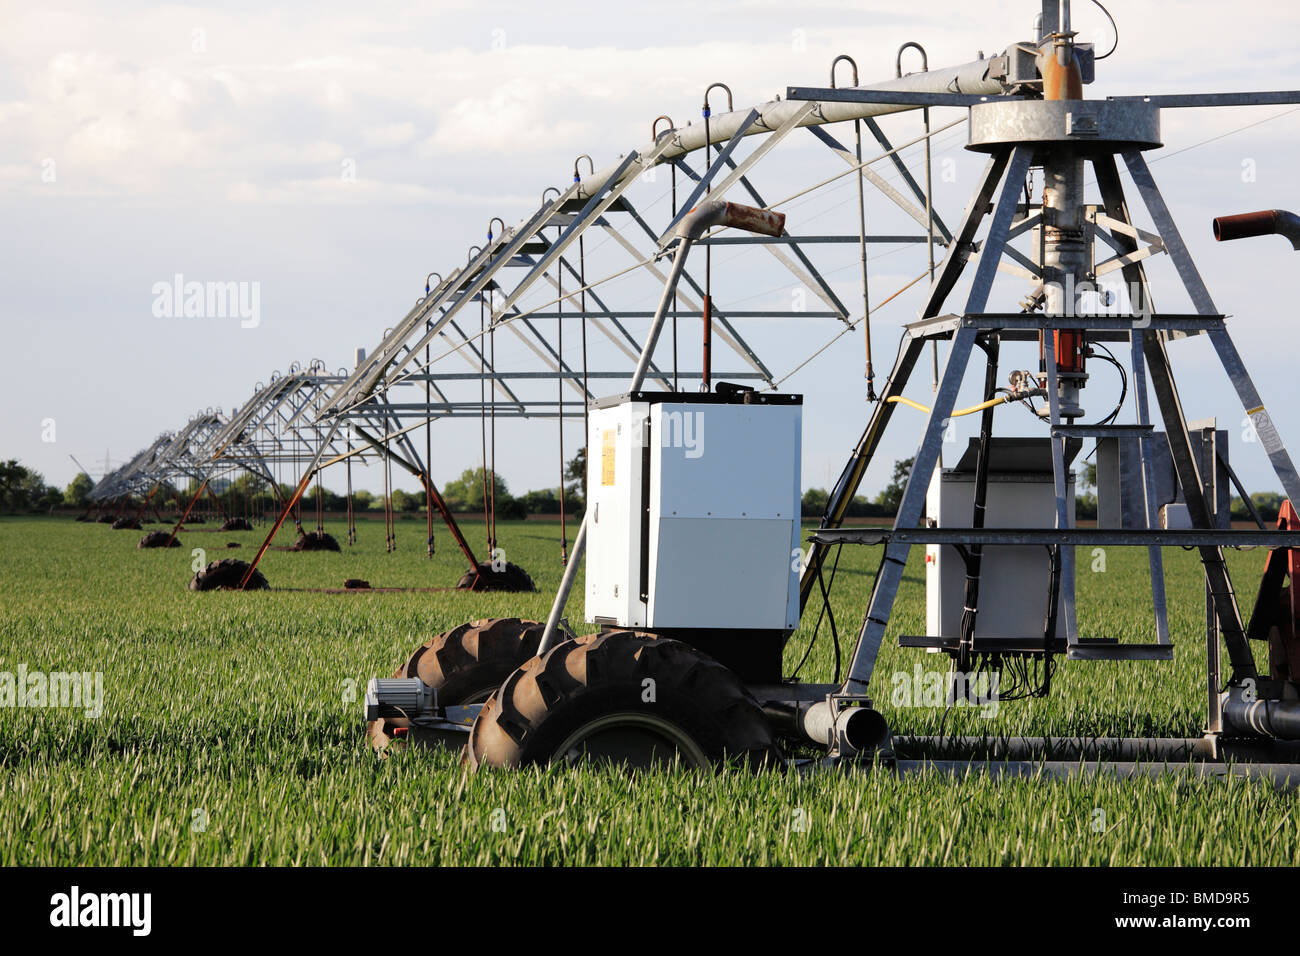 irrigation sprayer in a cornfield in May - Stock Image